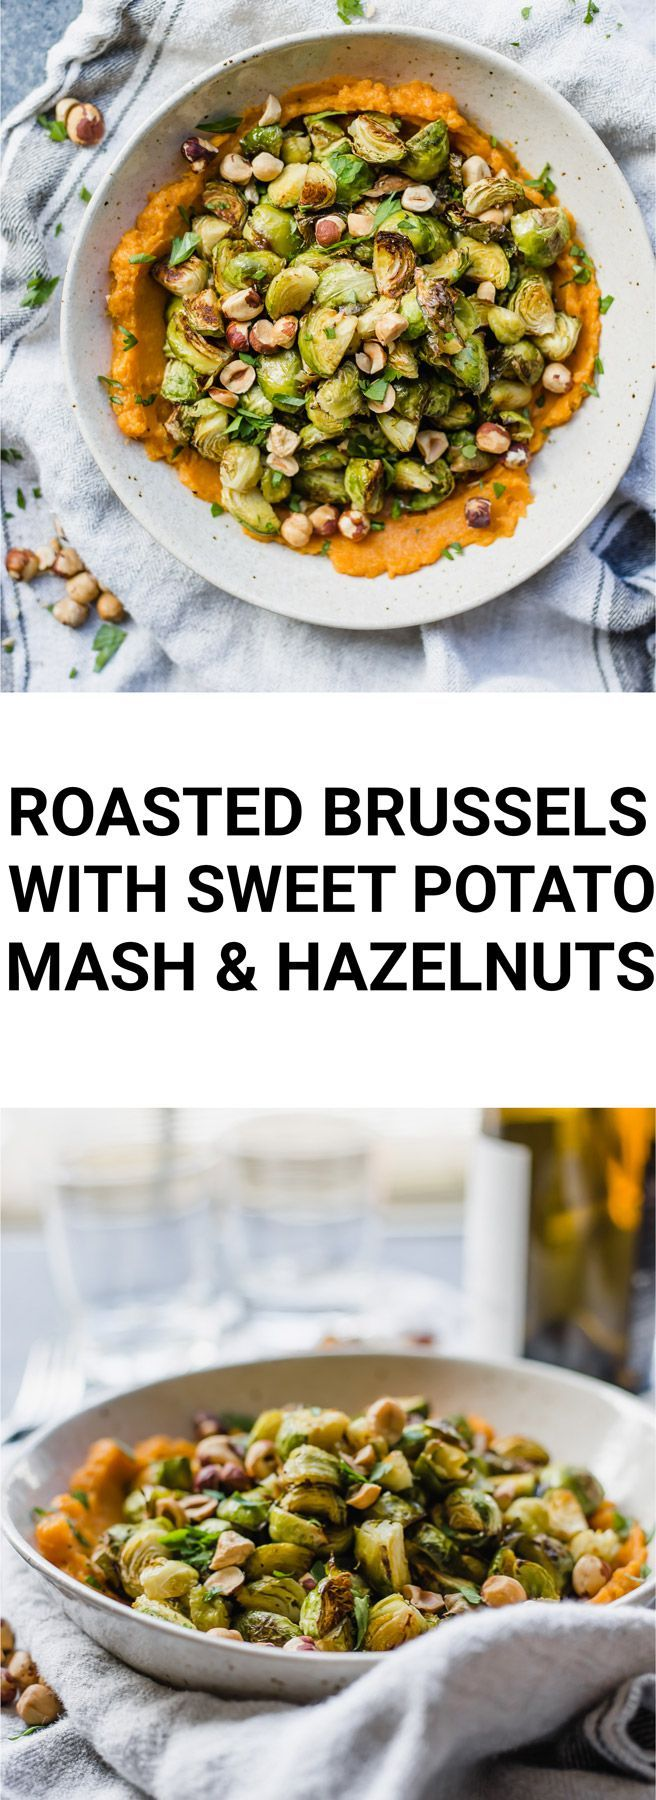 Roasted Brussels Sprouts with Sweet Potato Mash and Hazelnuts: Creamy, smoky, roasty, and crunchy, you\'ll love this side dish or main course! Naturally vegan and gluten free. || fooduzzi.com recipe #sweetpotato #vegan #brusselssprouts